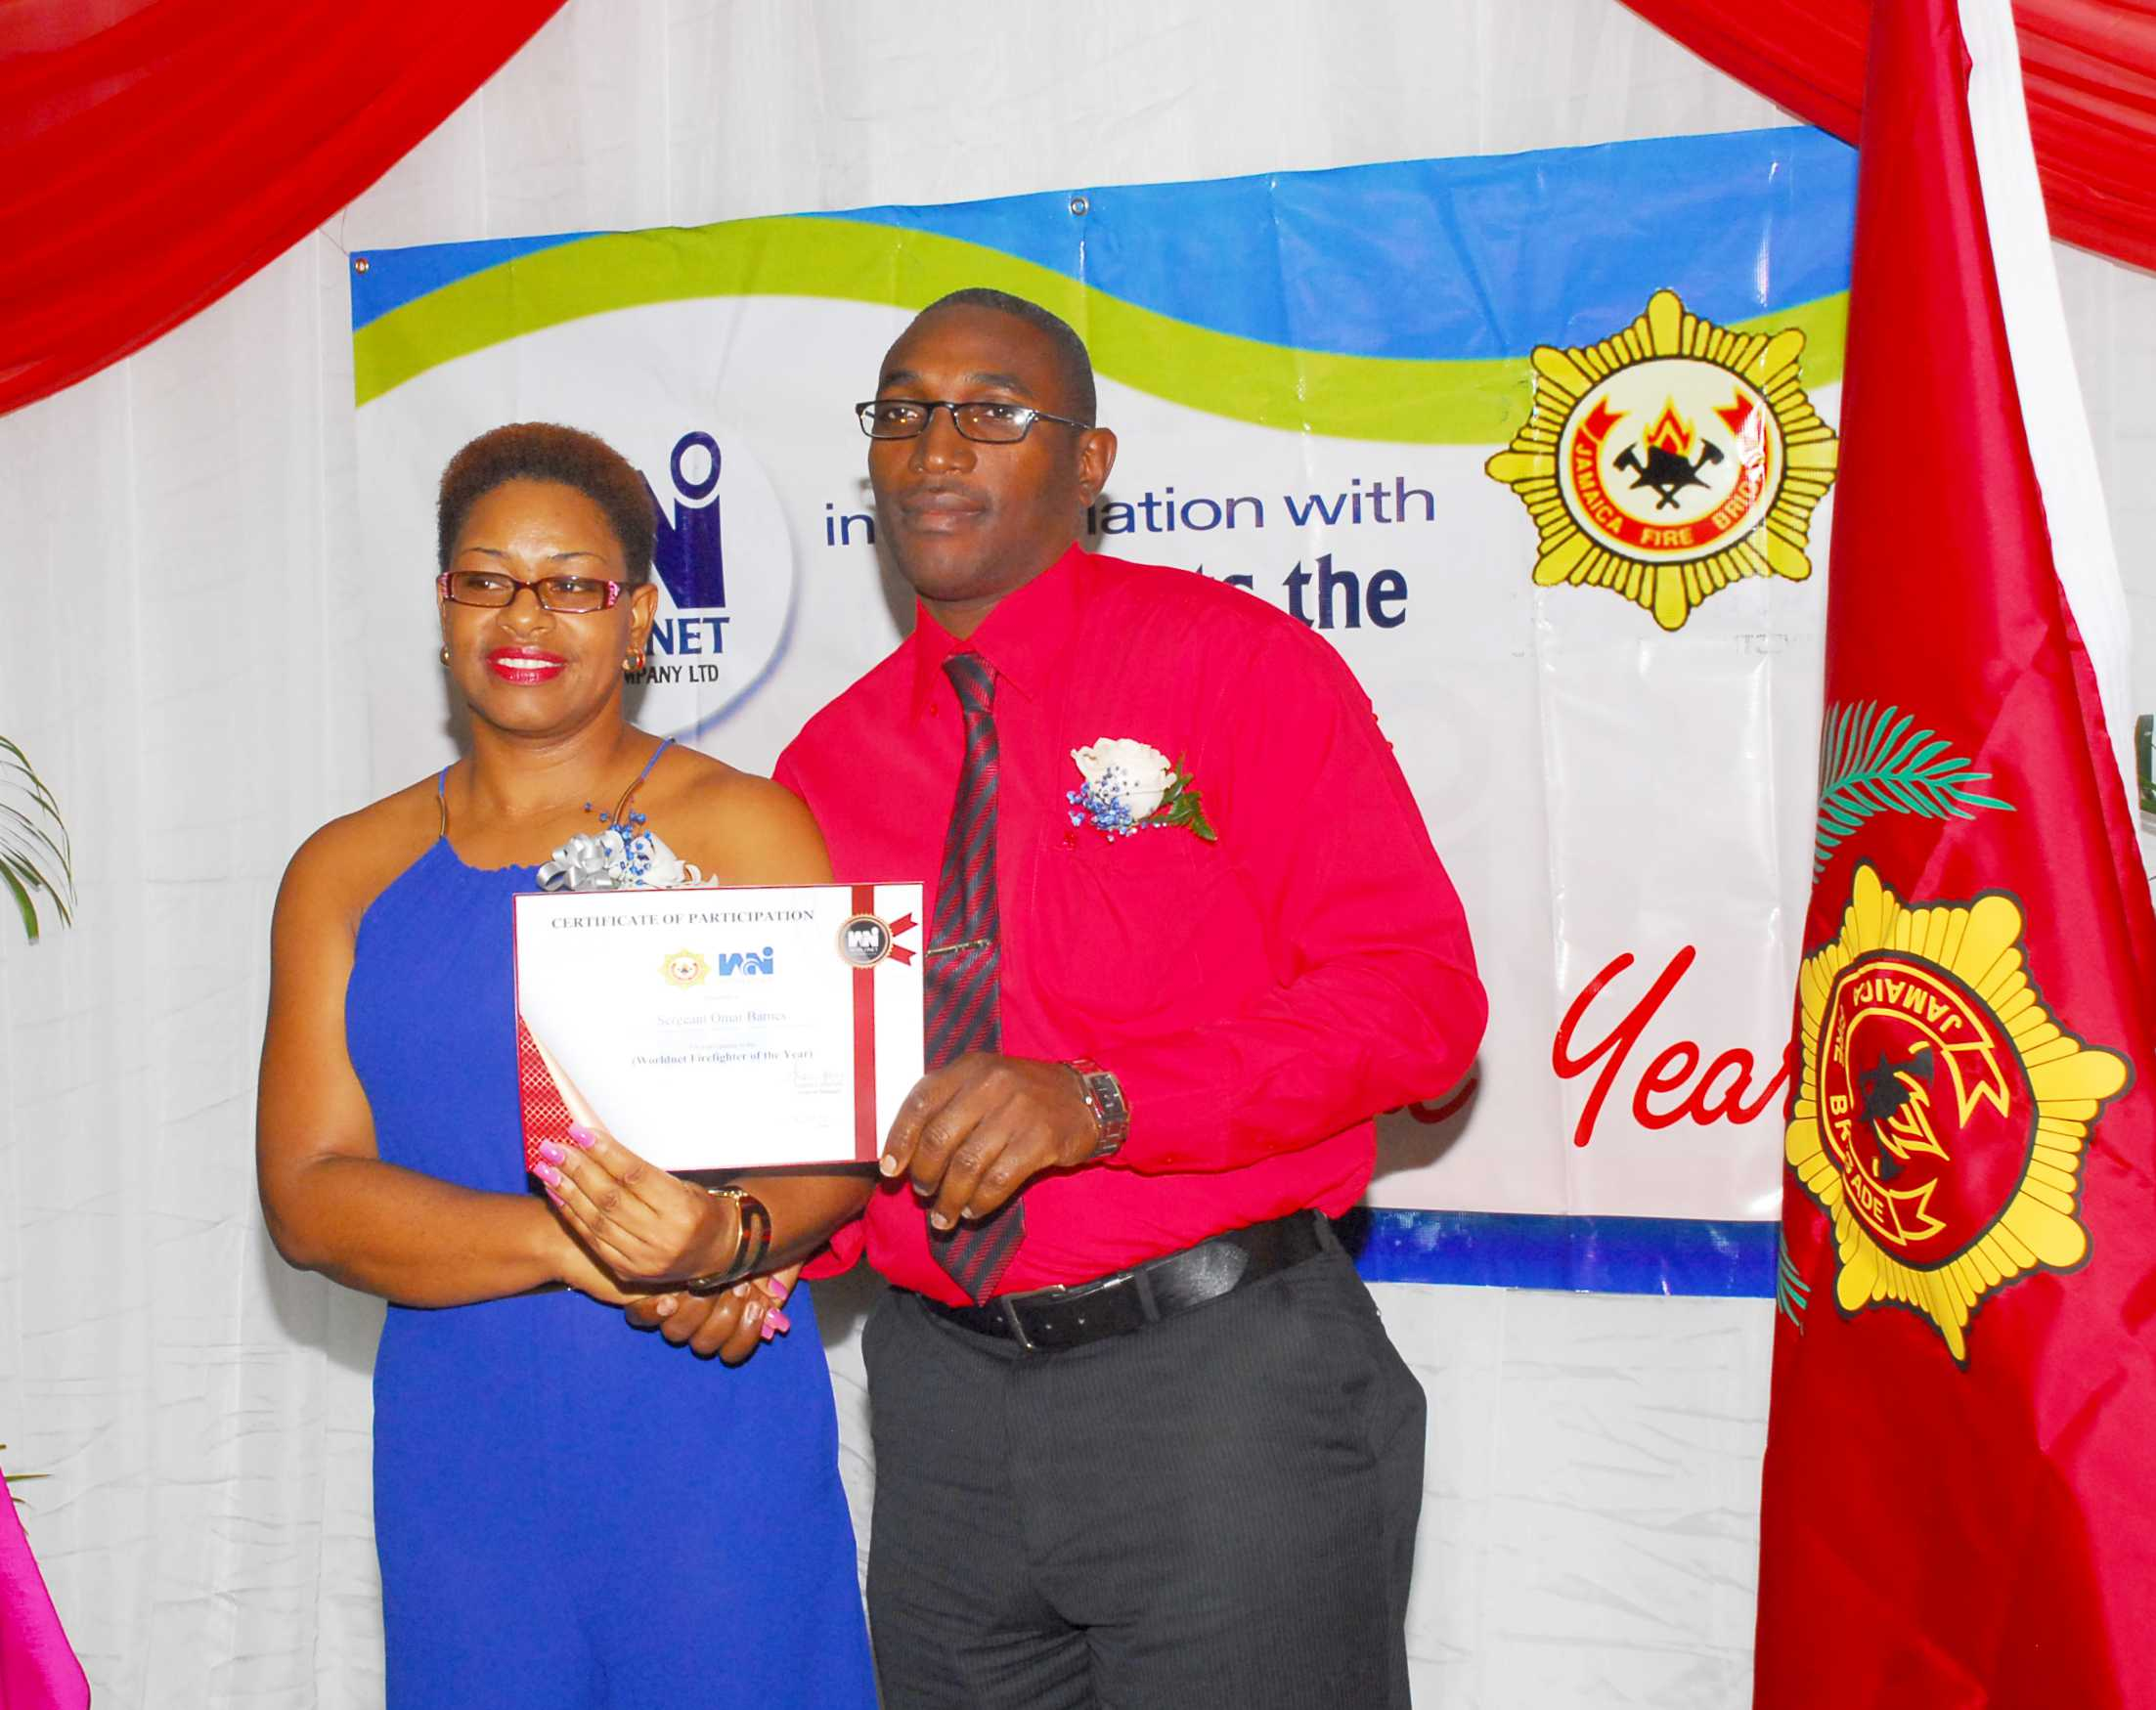 Contestant being awarded at the seminar